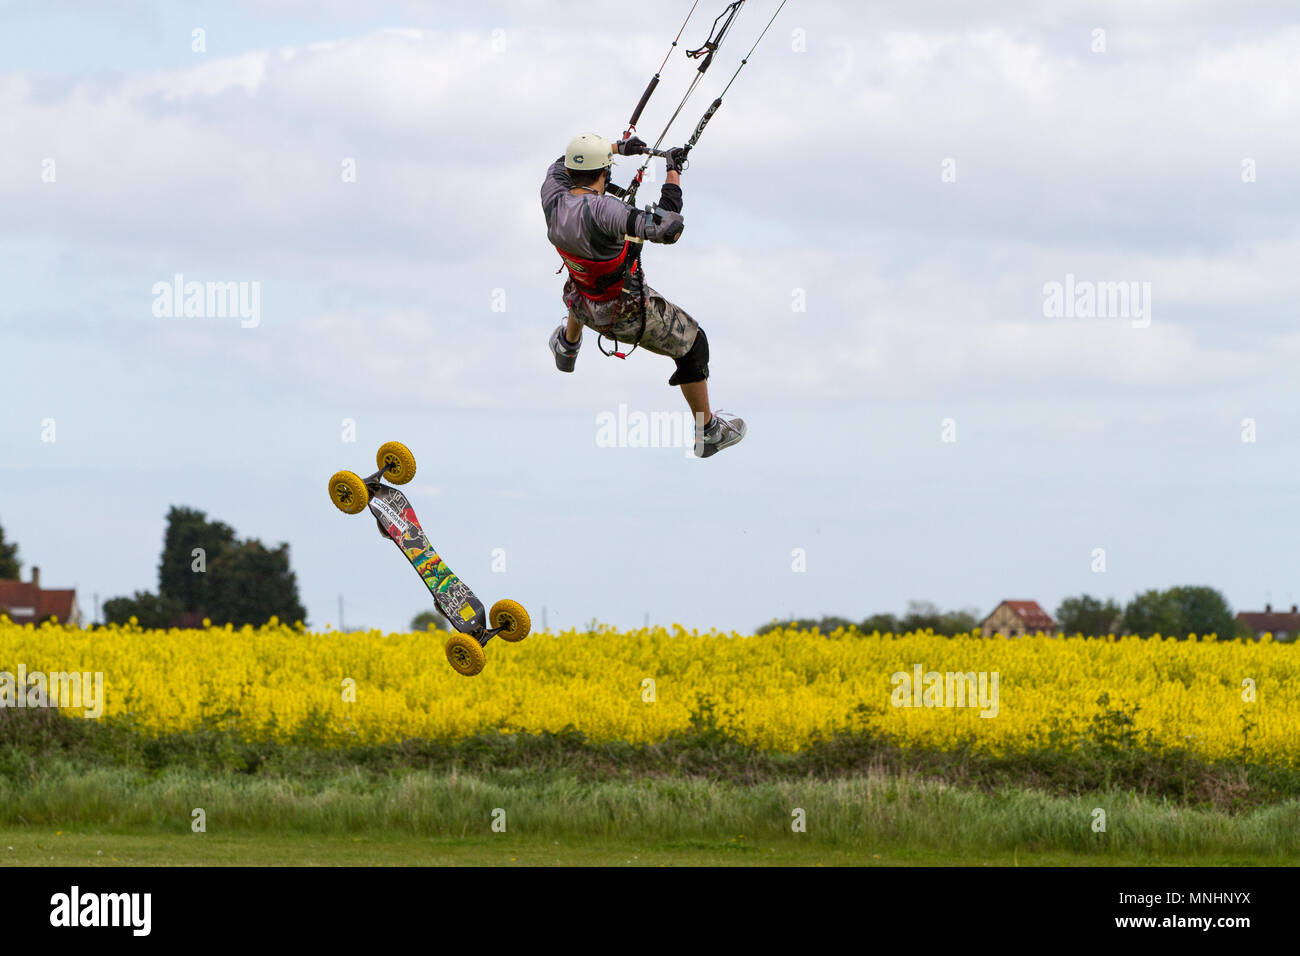 Extreme sport kite landboarding in Essex, UK. Loss of board whilst airborne. Stock Photo